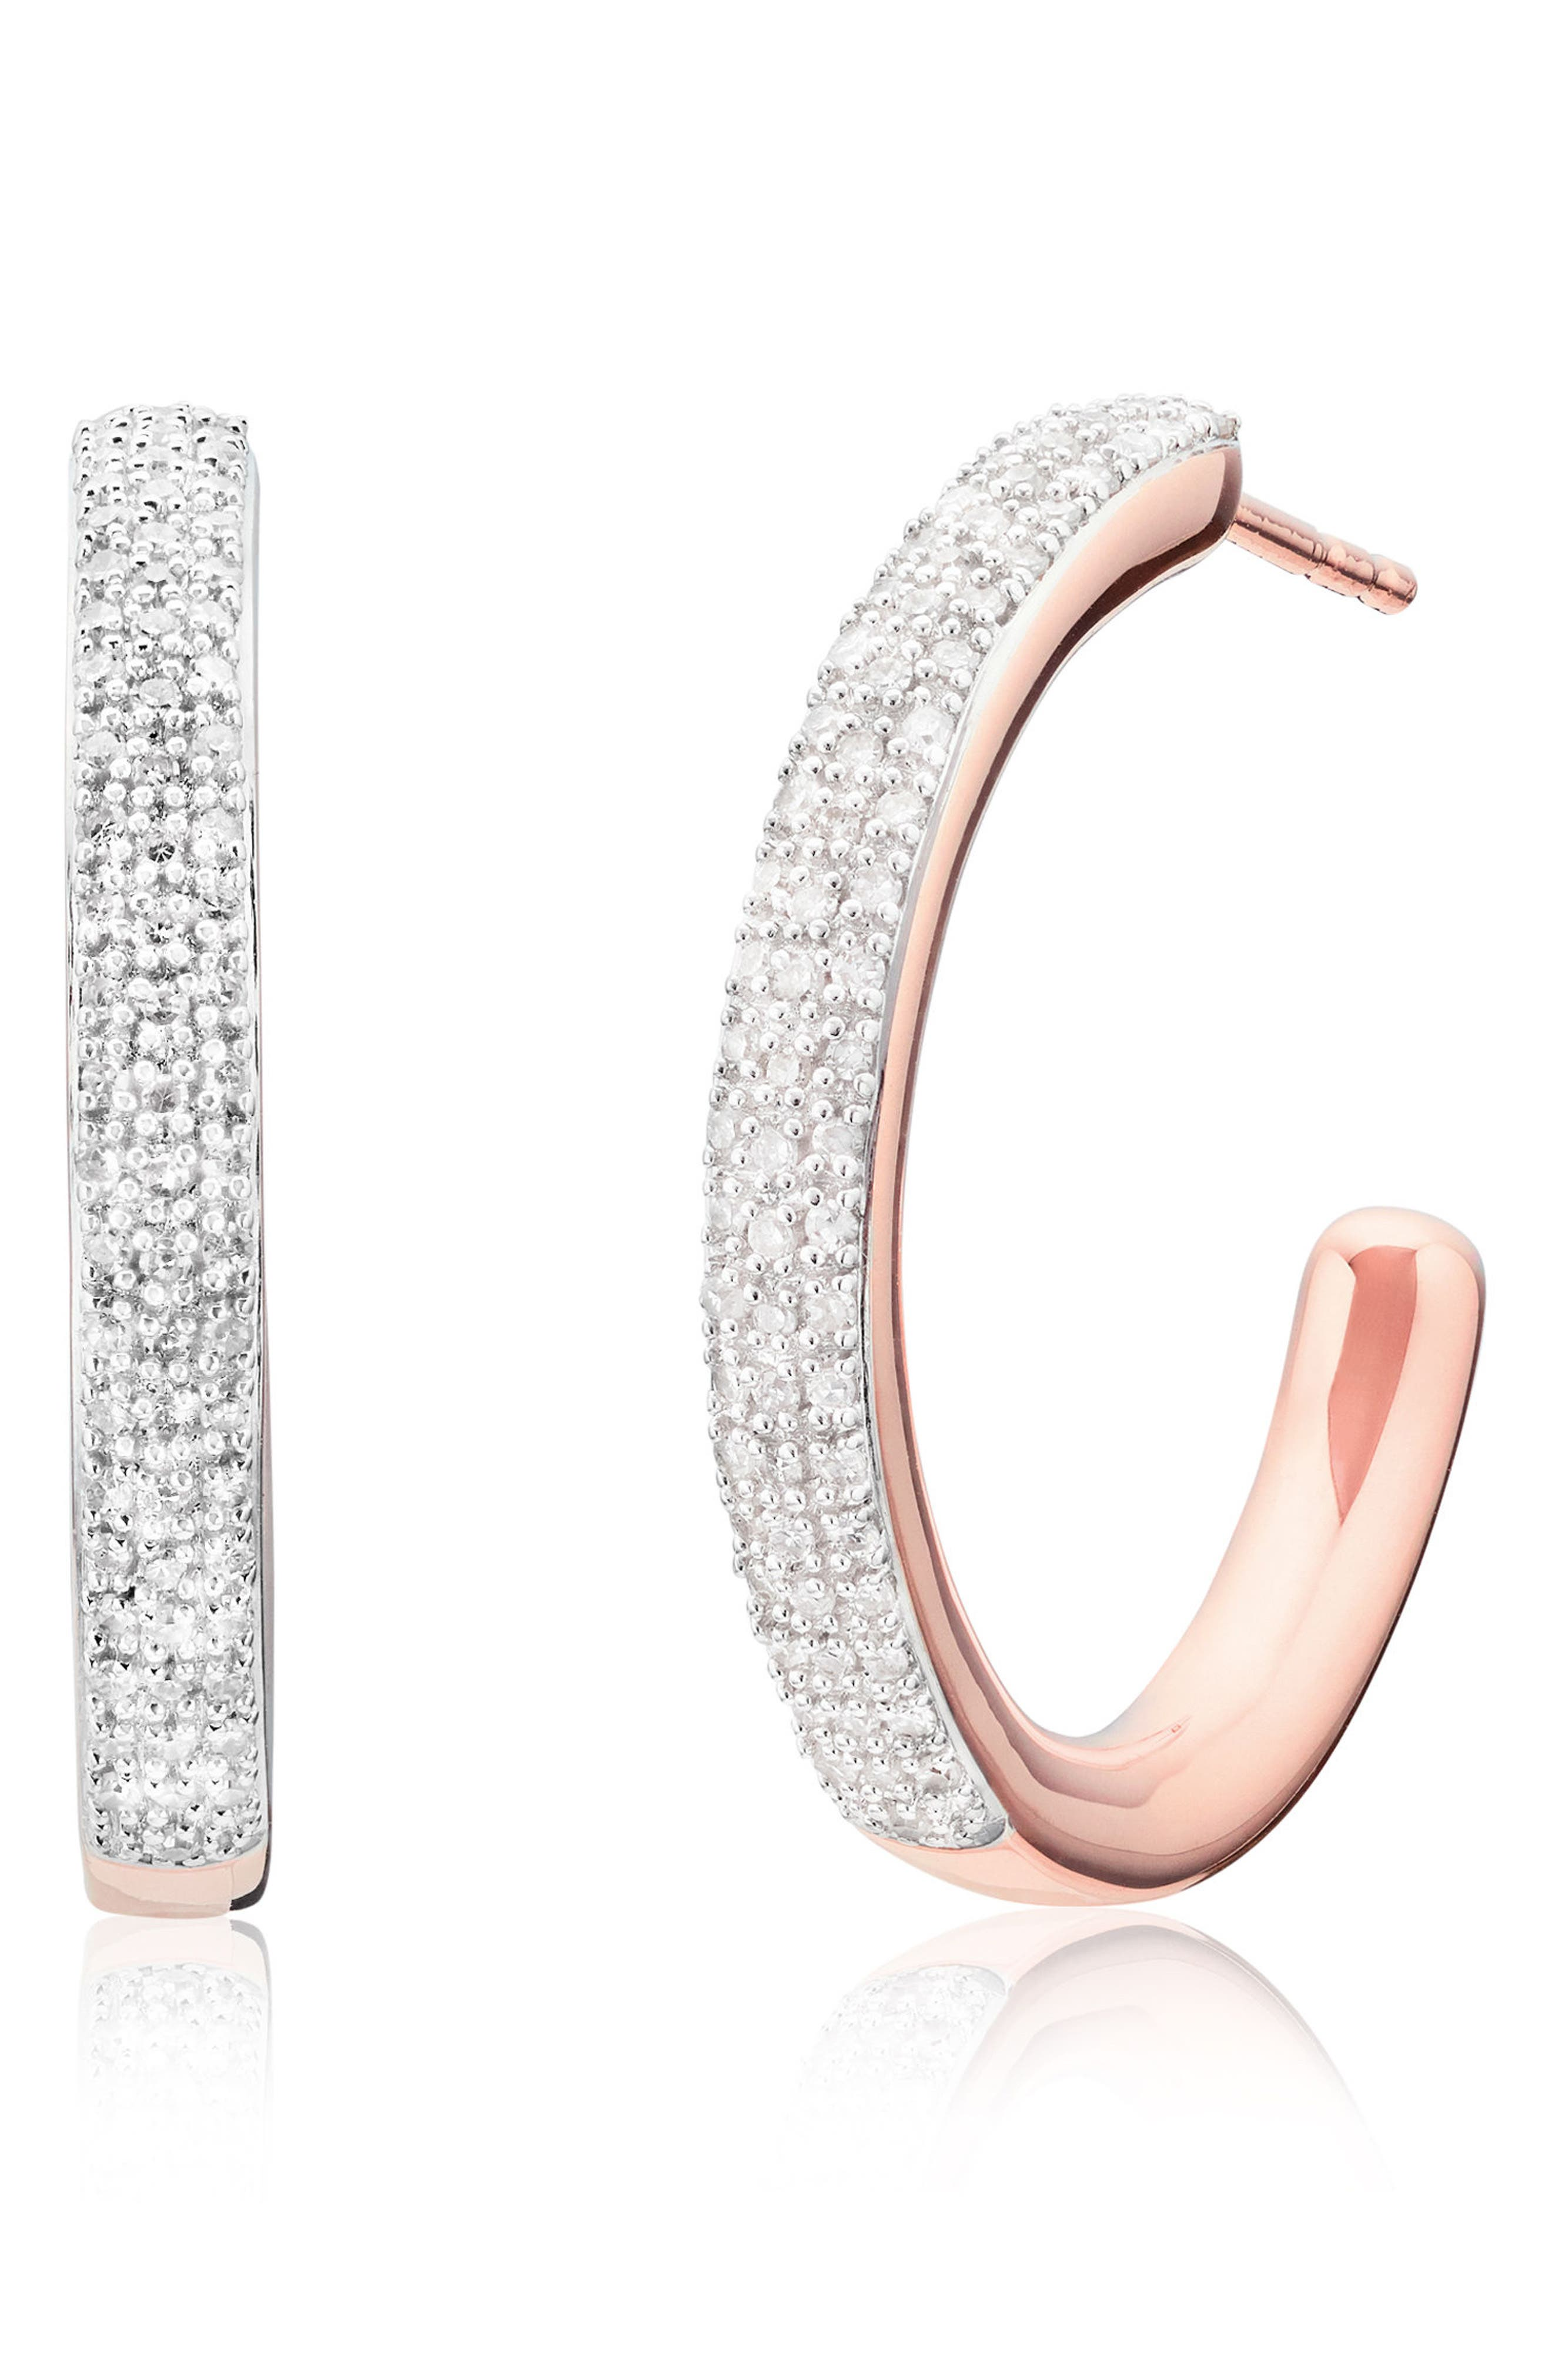 Fiji Large Diamond Hoop Earrings,                         Main,                         color, Rose Gold